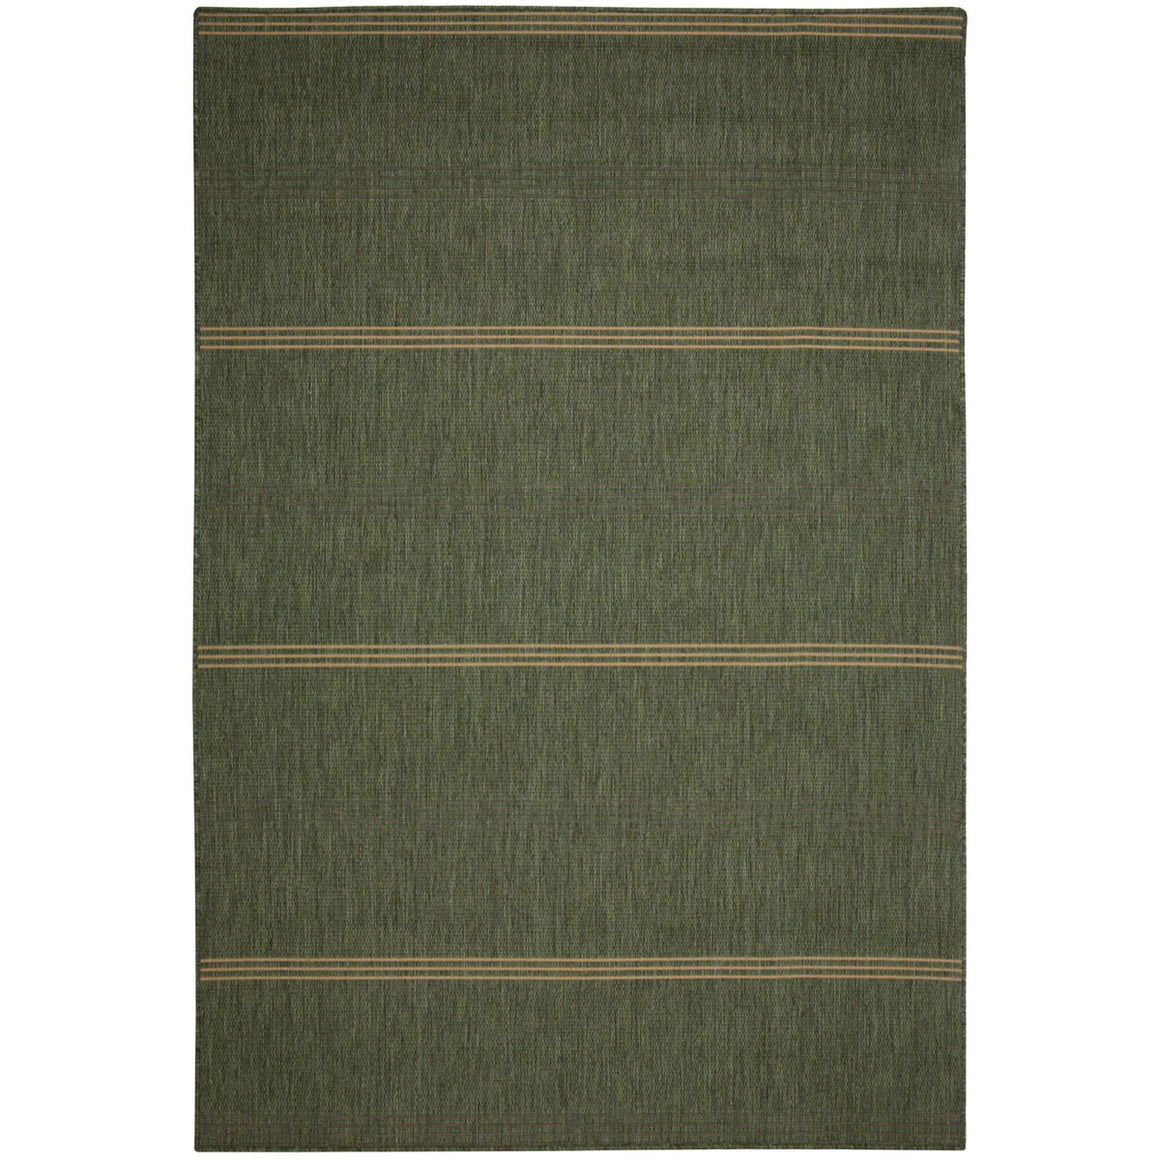 Inlet Stripe Green Outdoor Porch Rug